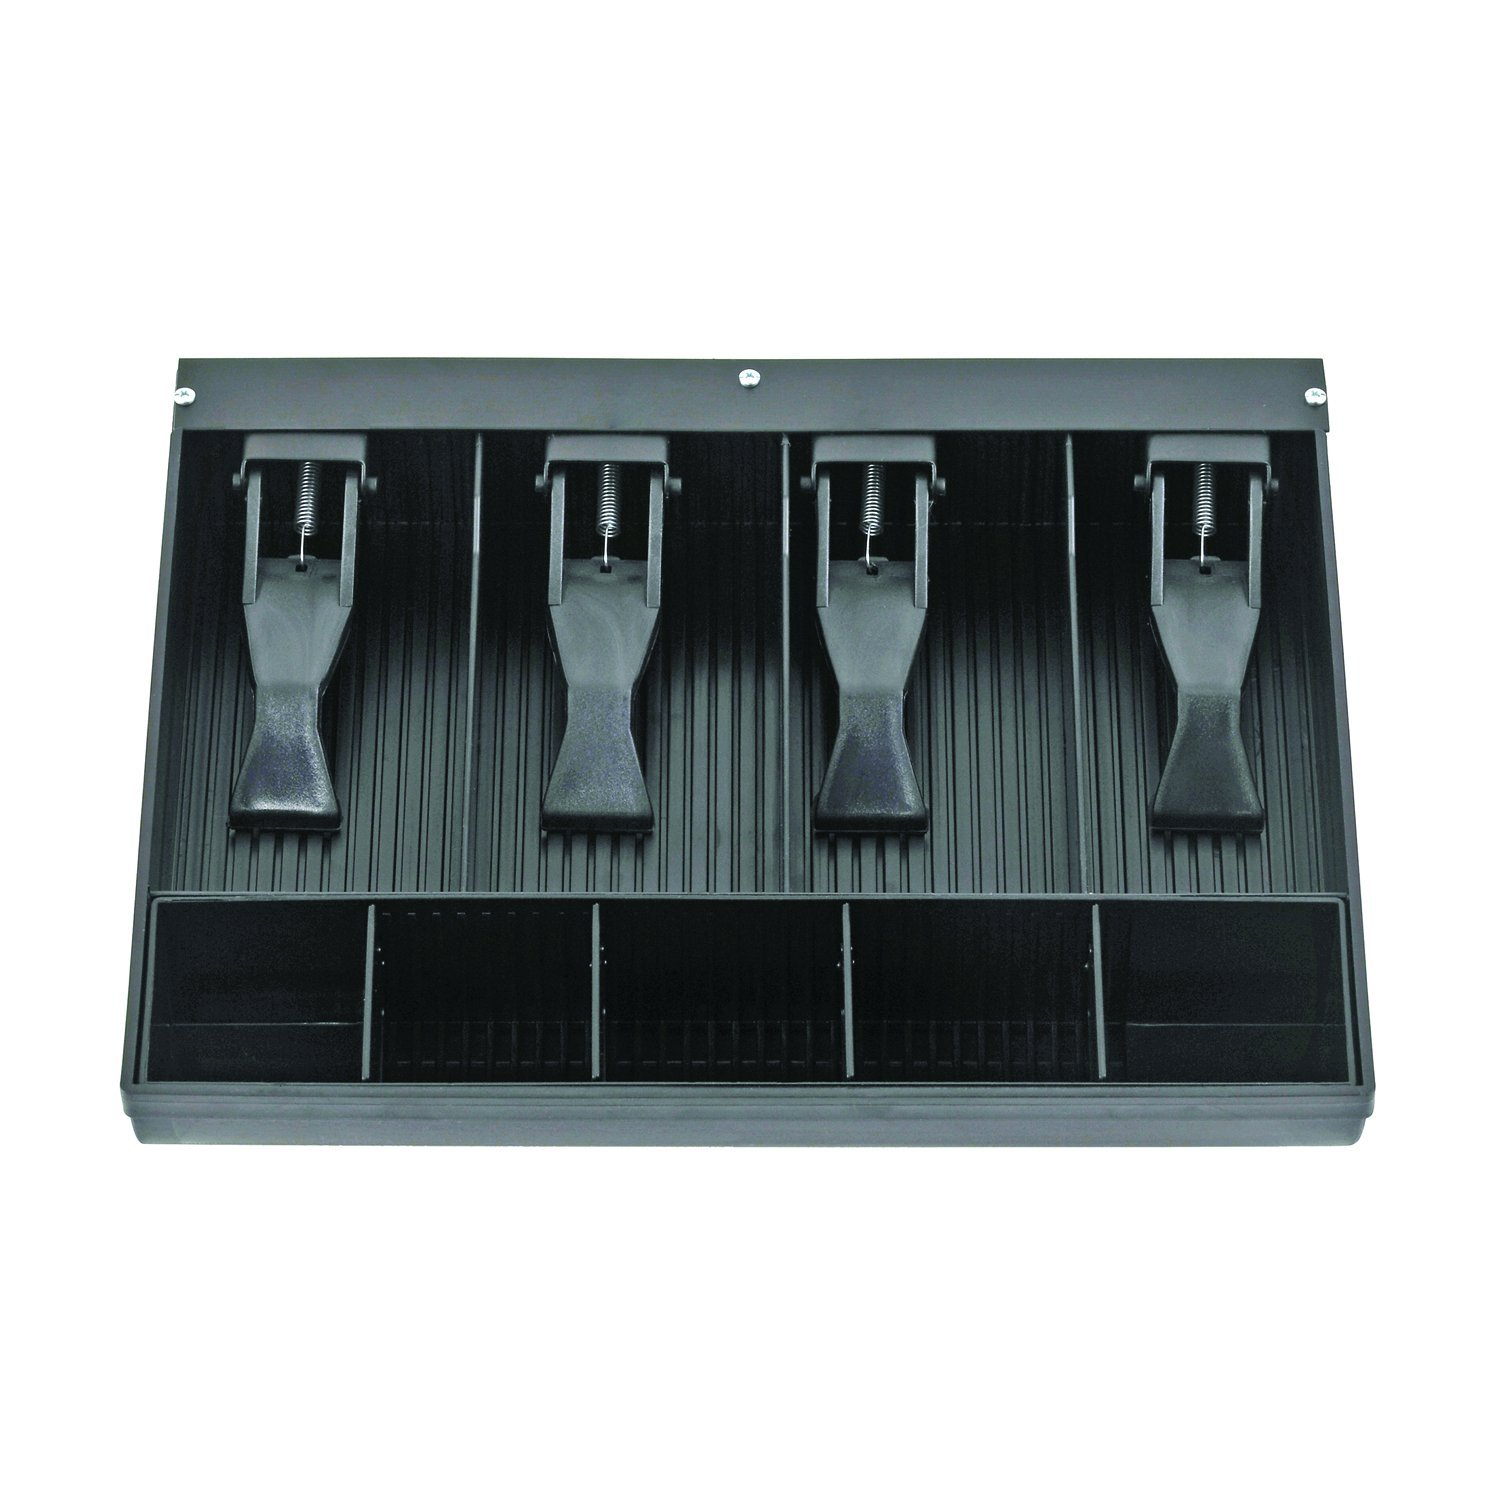 STEELMASTER 2.19 x 9.63 x 11.5 Inches, Replacement Cash Tray for Model 1046, Black (225284304) by MMF Industries (Image #3)